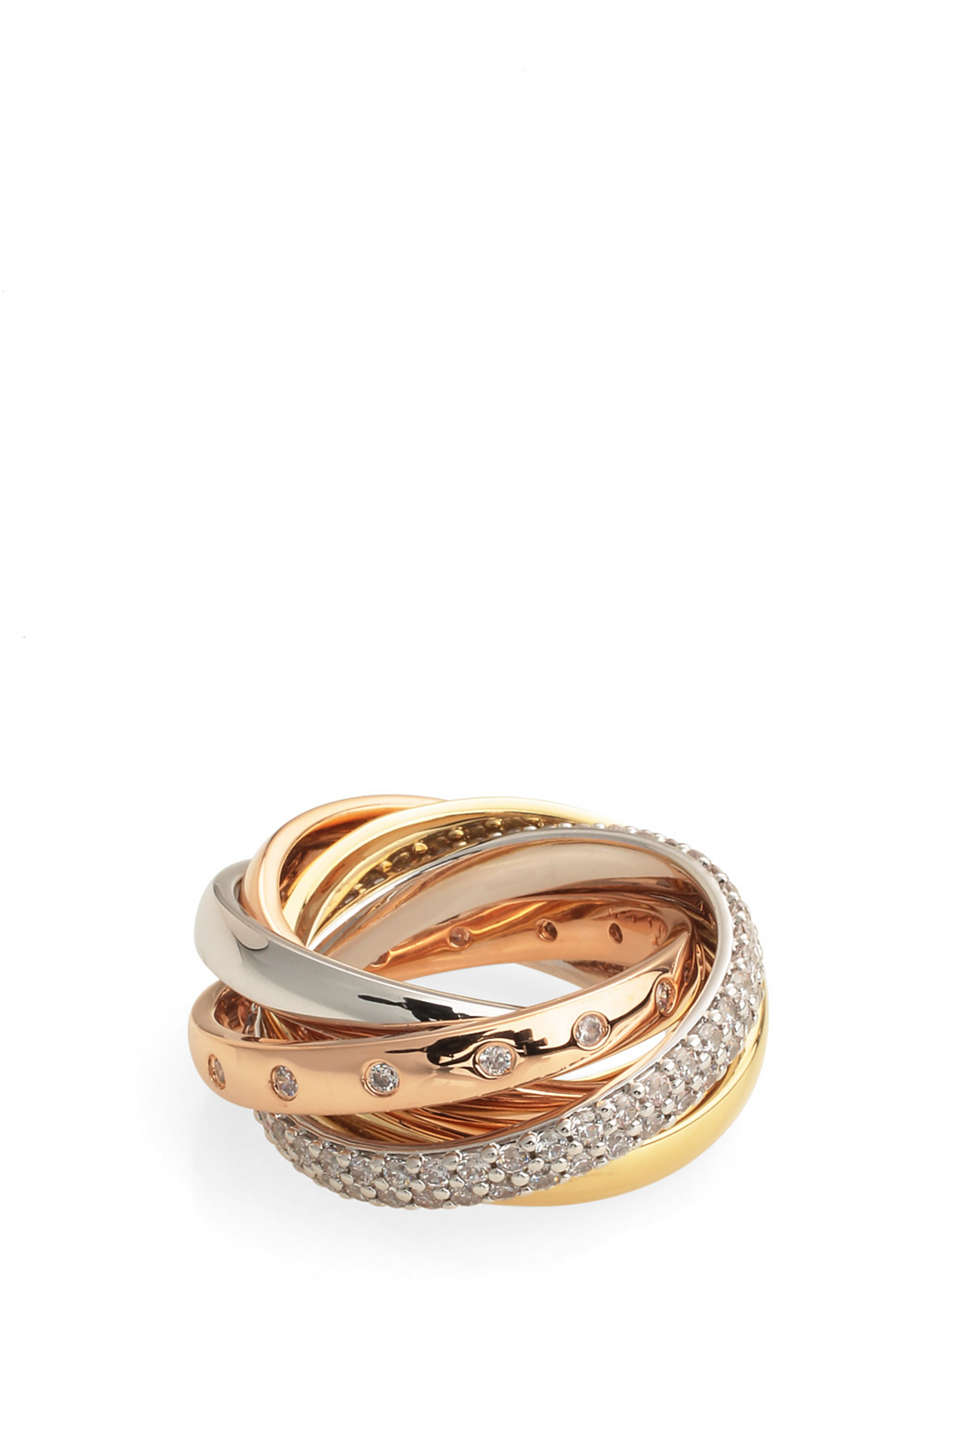 five entwined rings made from shiny metal (brass), partially gold-plated, set with zirconia